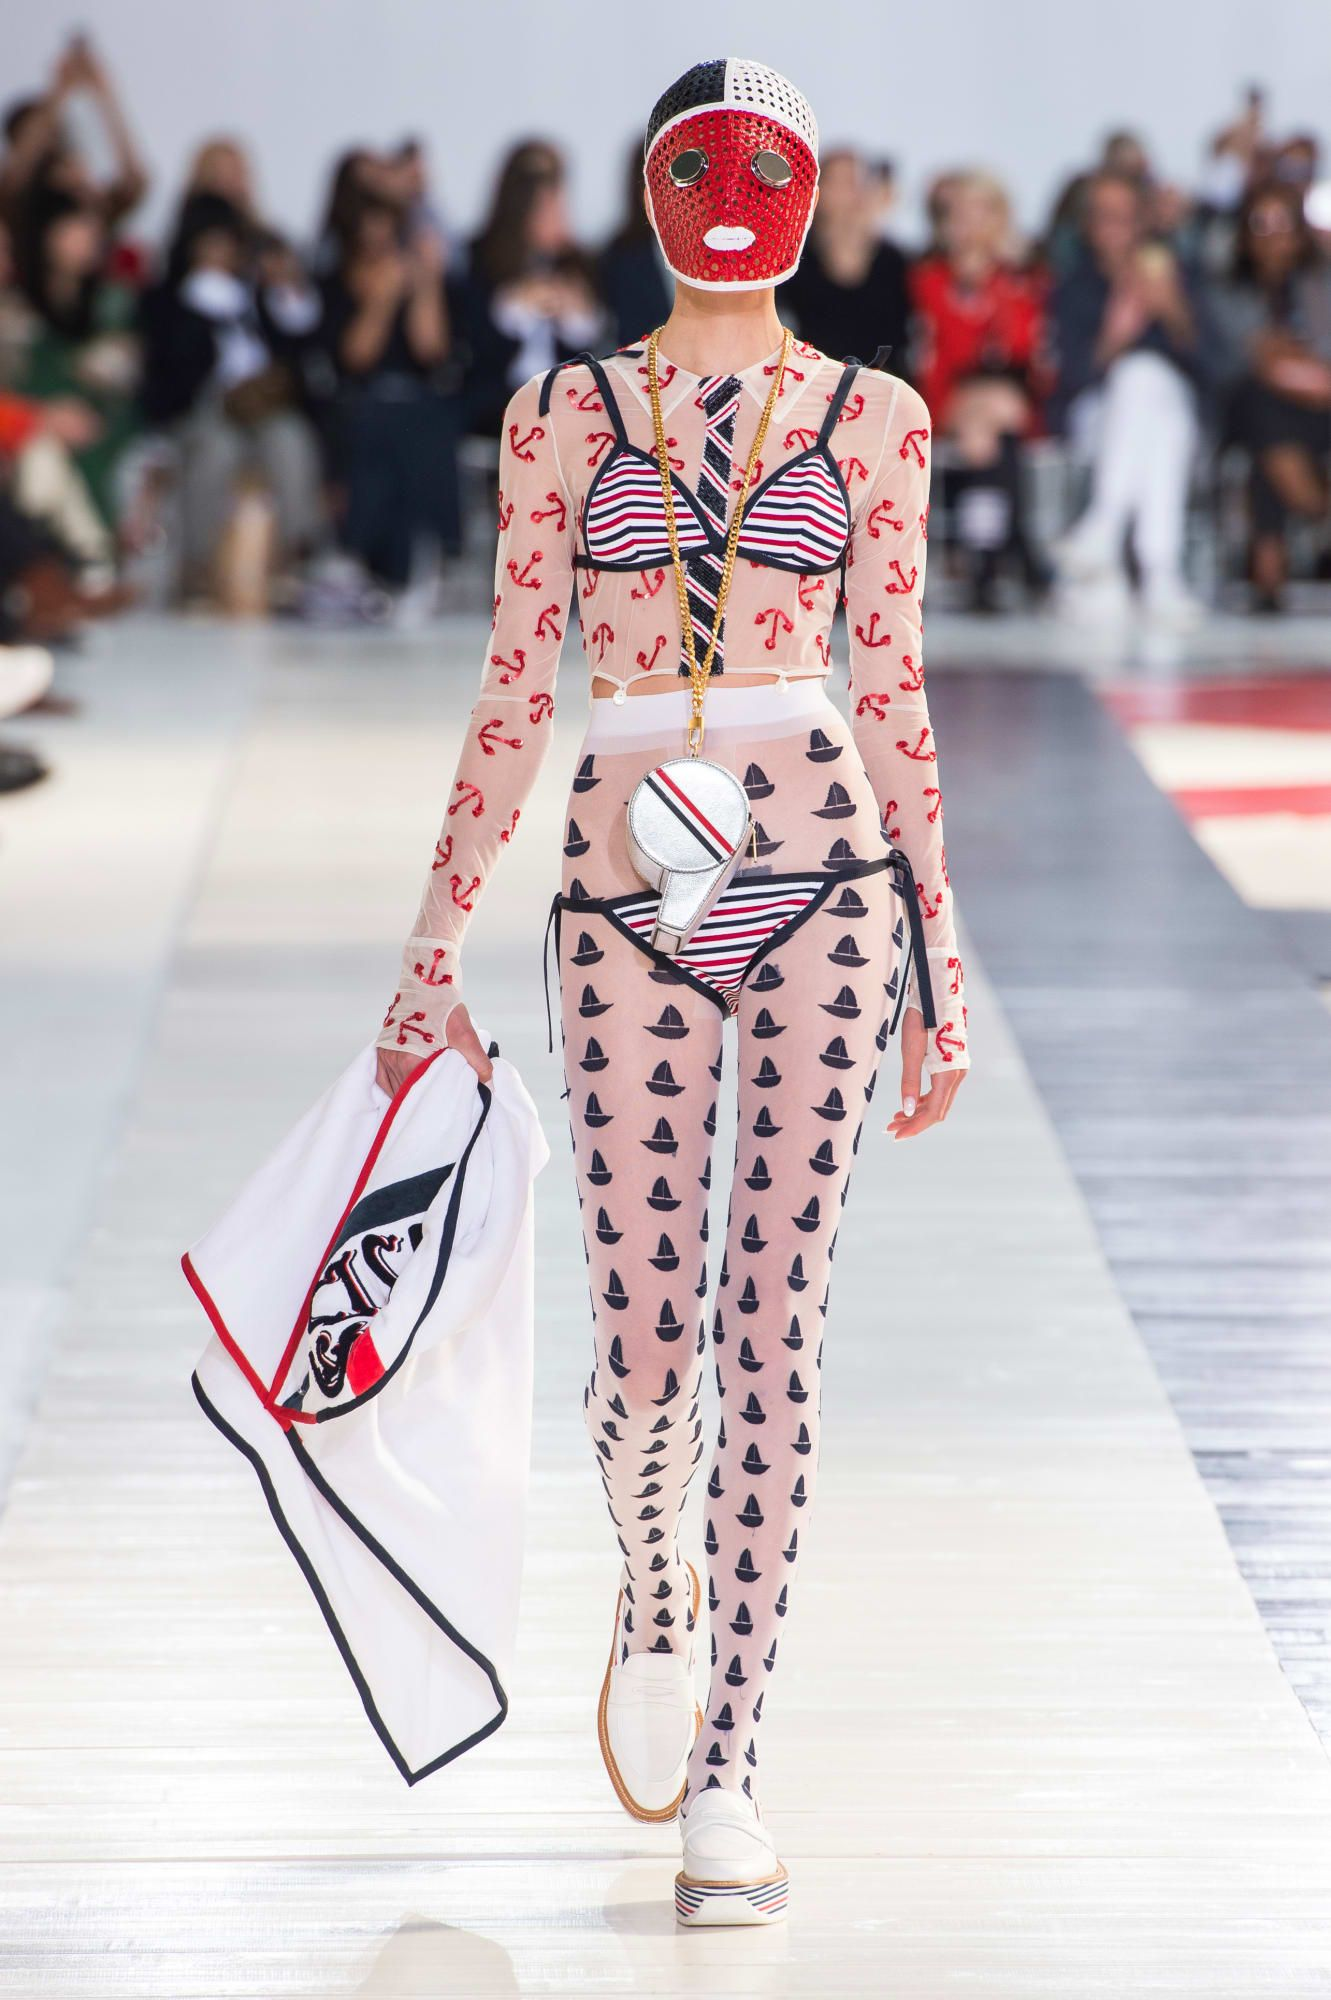 11 Top Trends From Paris Fashion Week Spring 2019 Fashion Fashion Week Spring Fashion Week